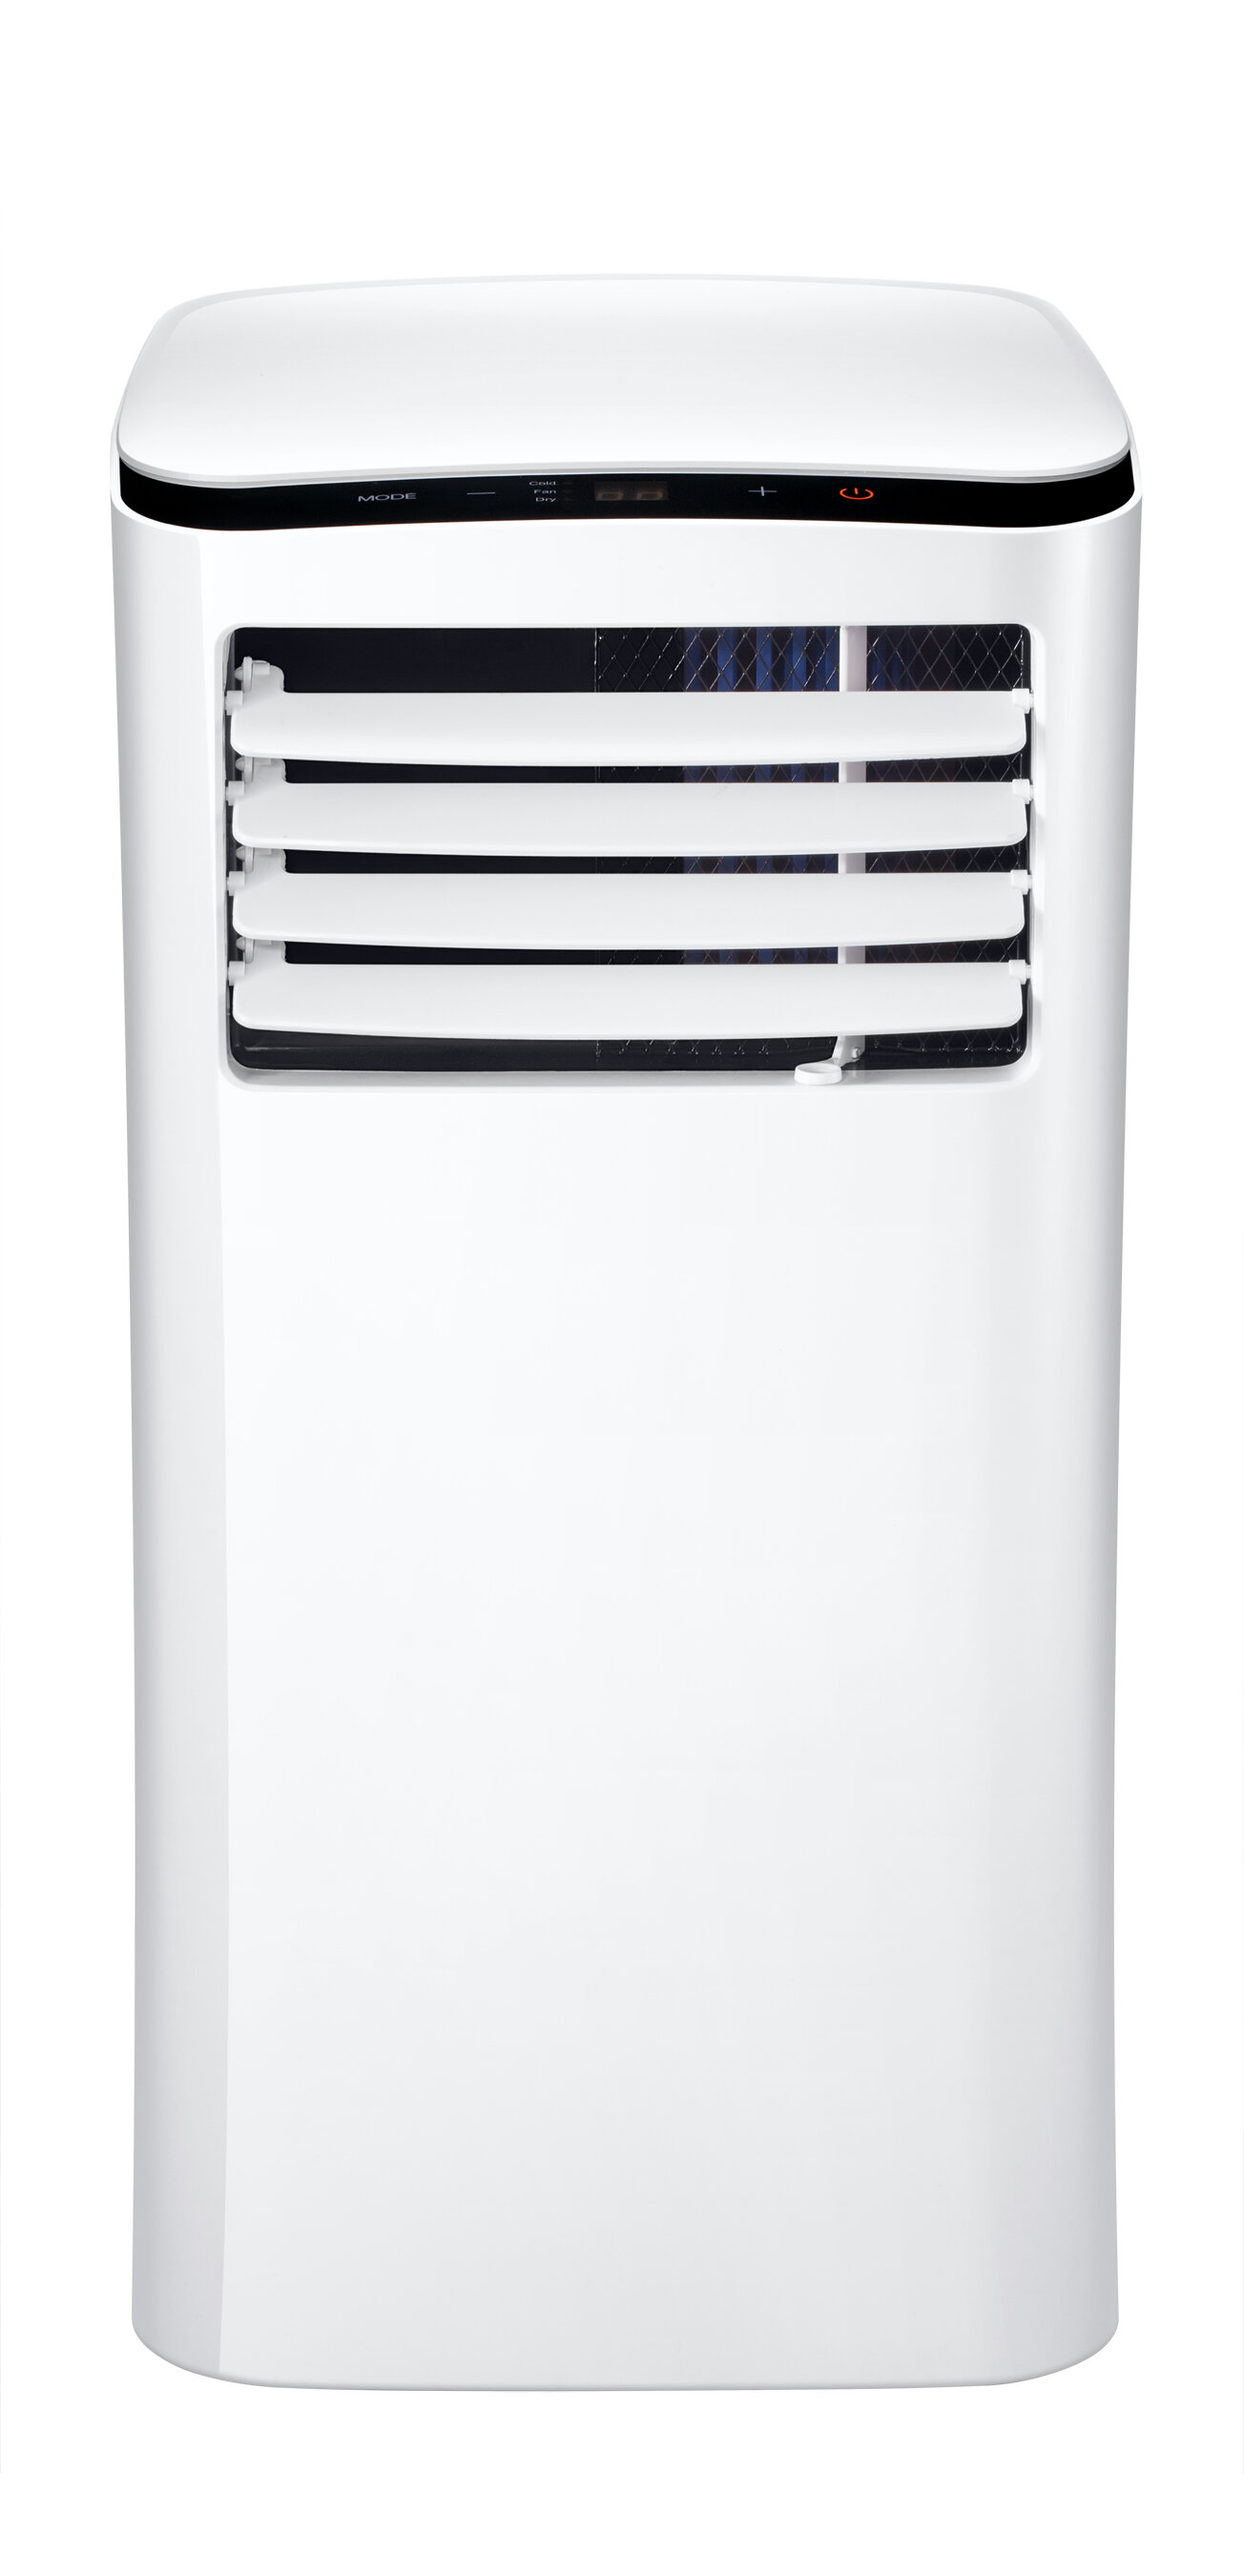 Comfort Aire 10 000 Btu Portable Air Conditioner With Remote Reviews Wayfair